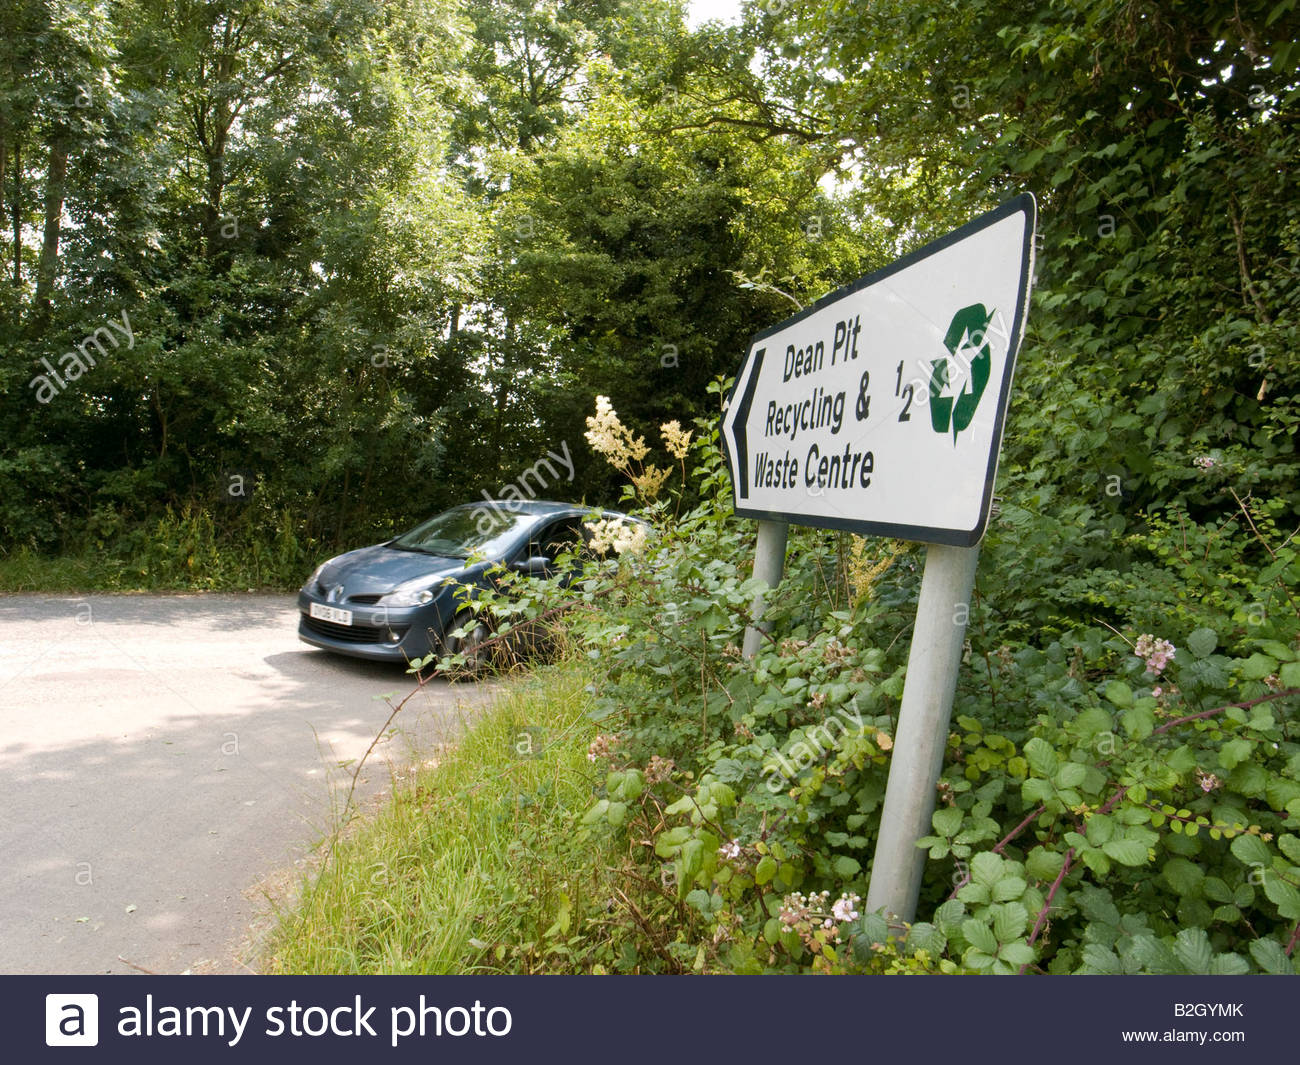 Recycling and waste centre in Dean in Oxfordshire countryside - Stock Image